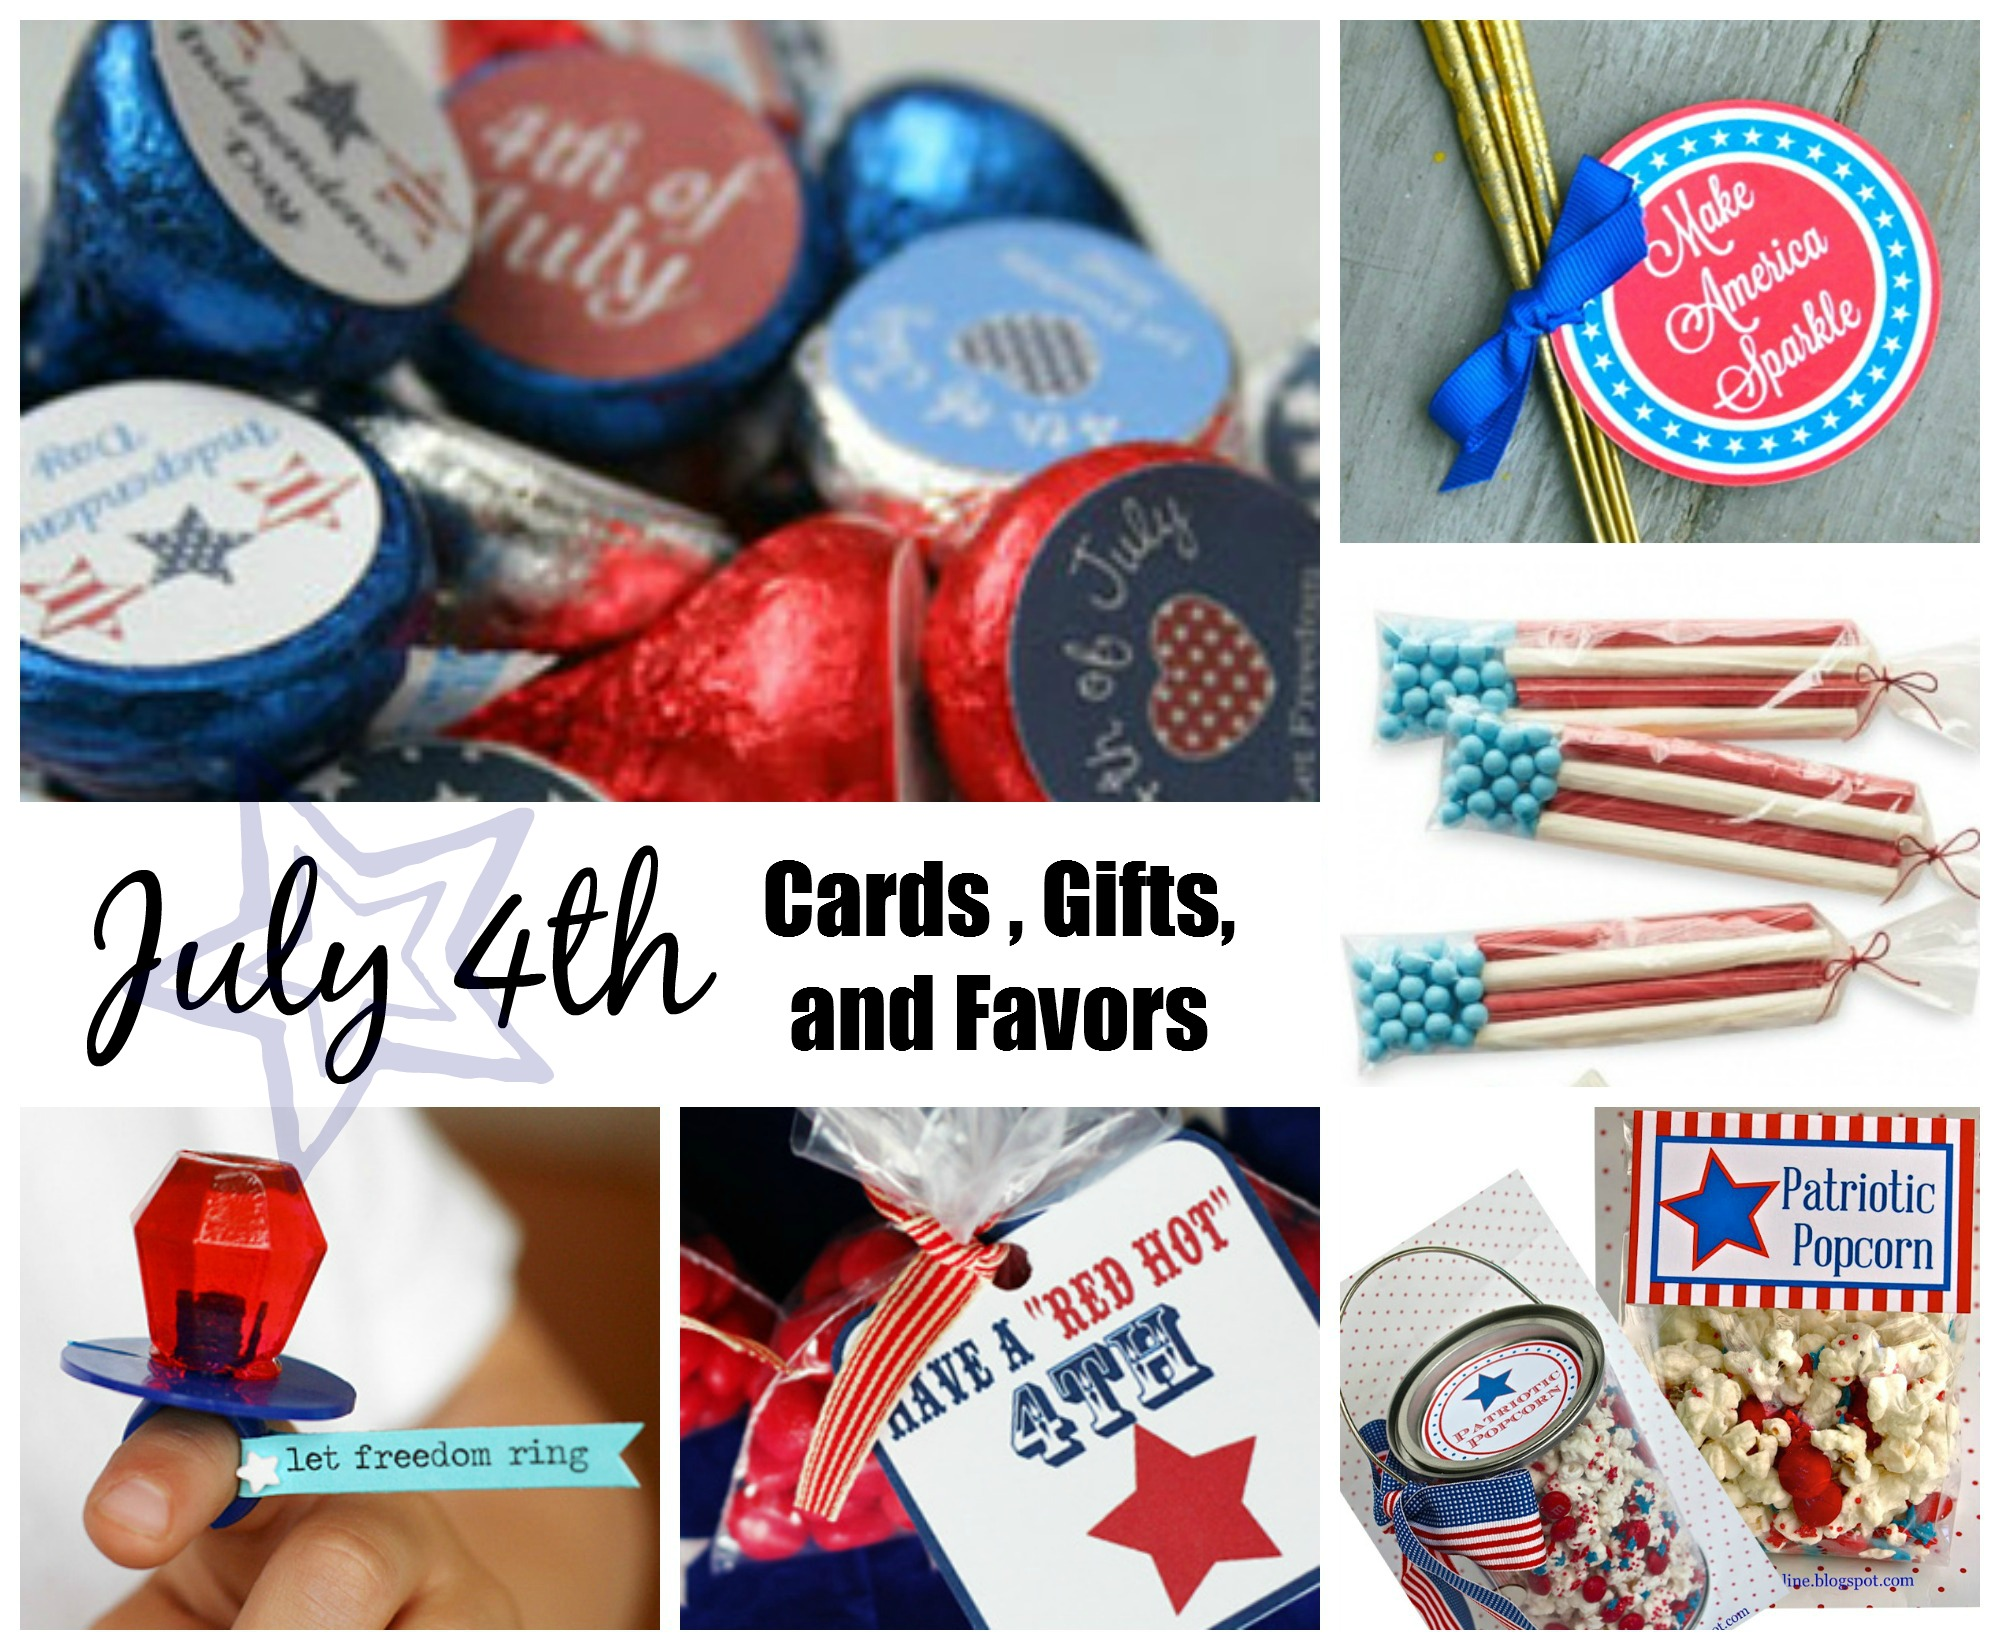 July 4th Card, Gift, and Favor Ideas